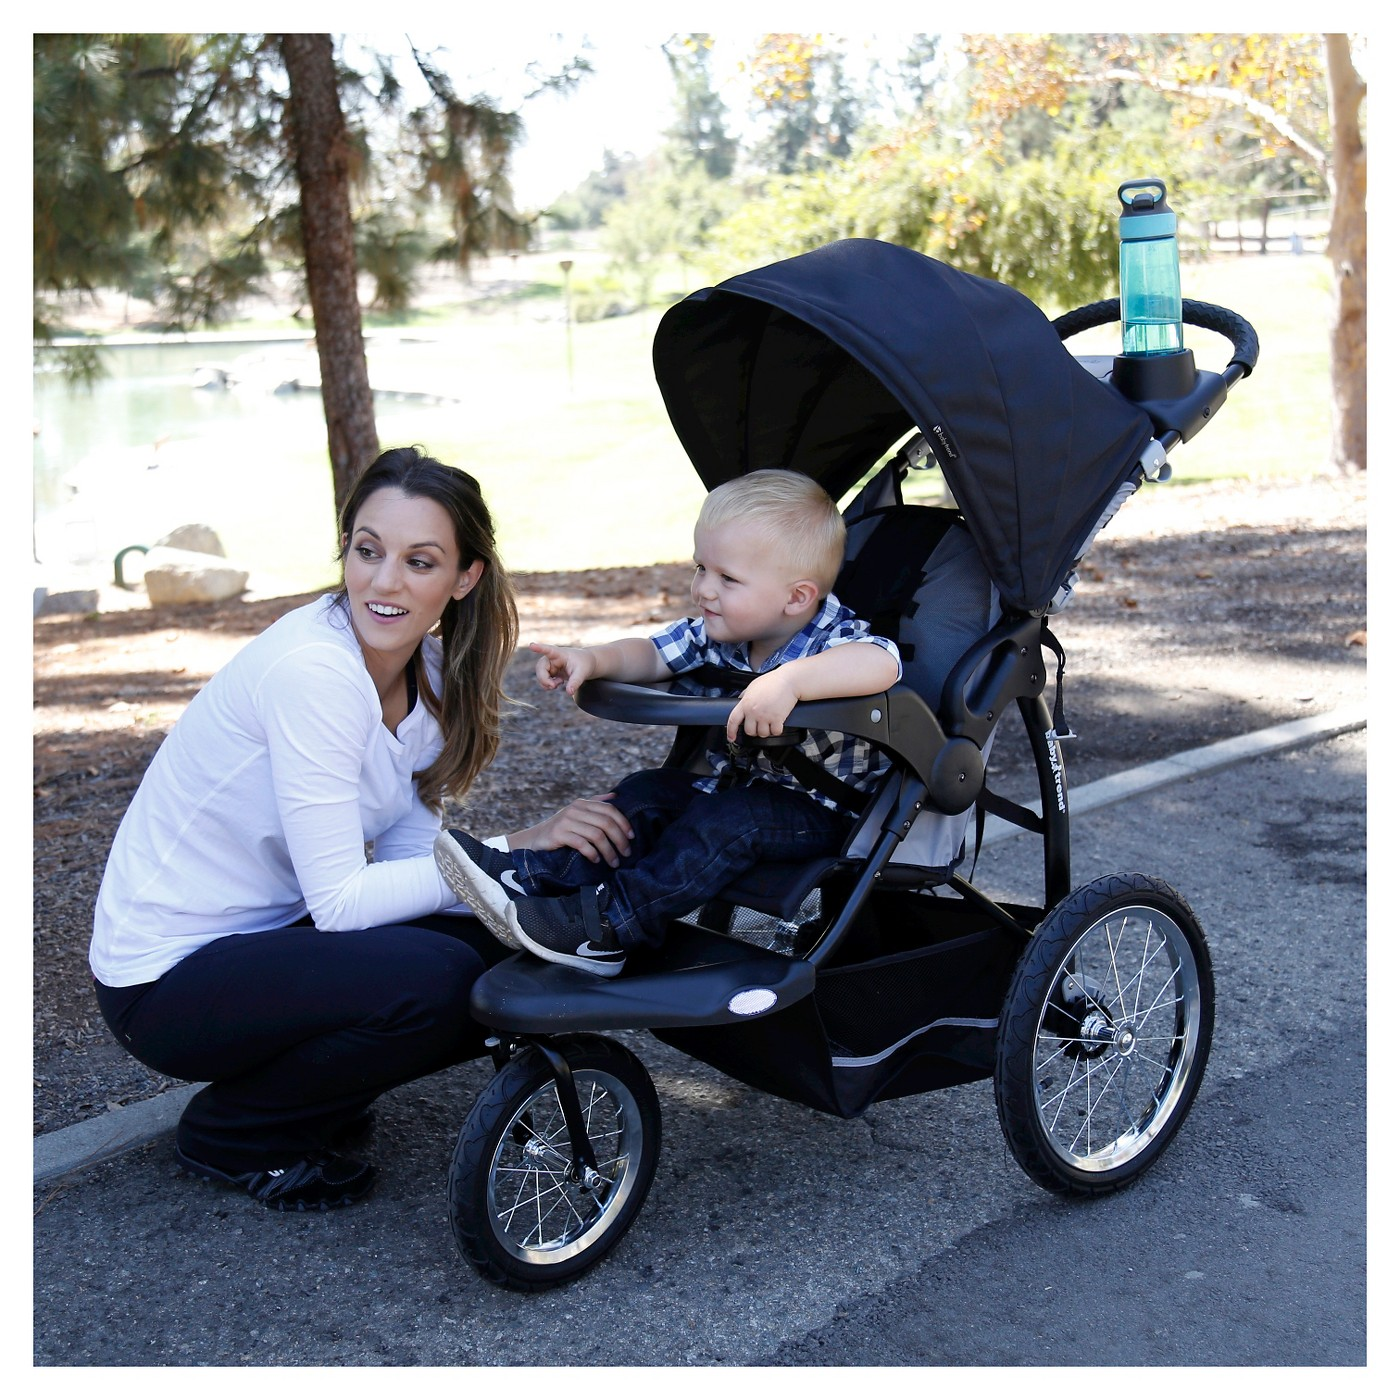 Baby Trend Expedition RG Jogger Stroller - image 6 of 6